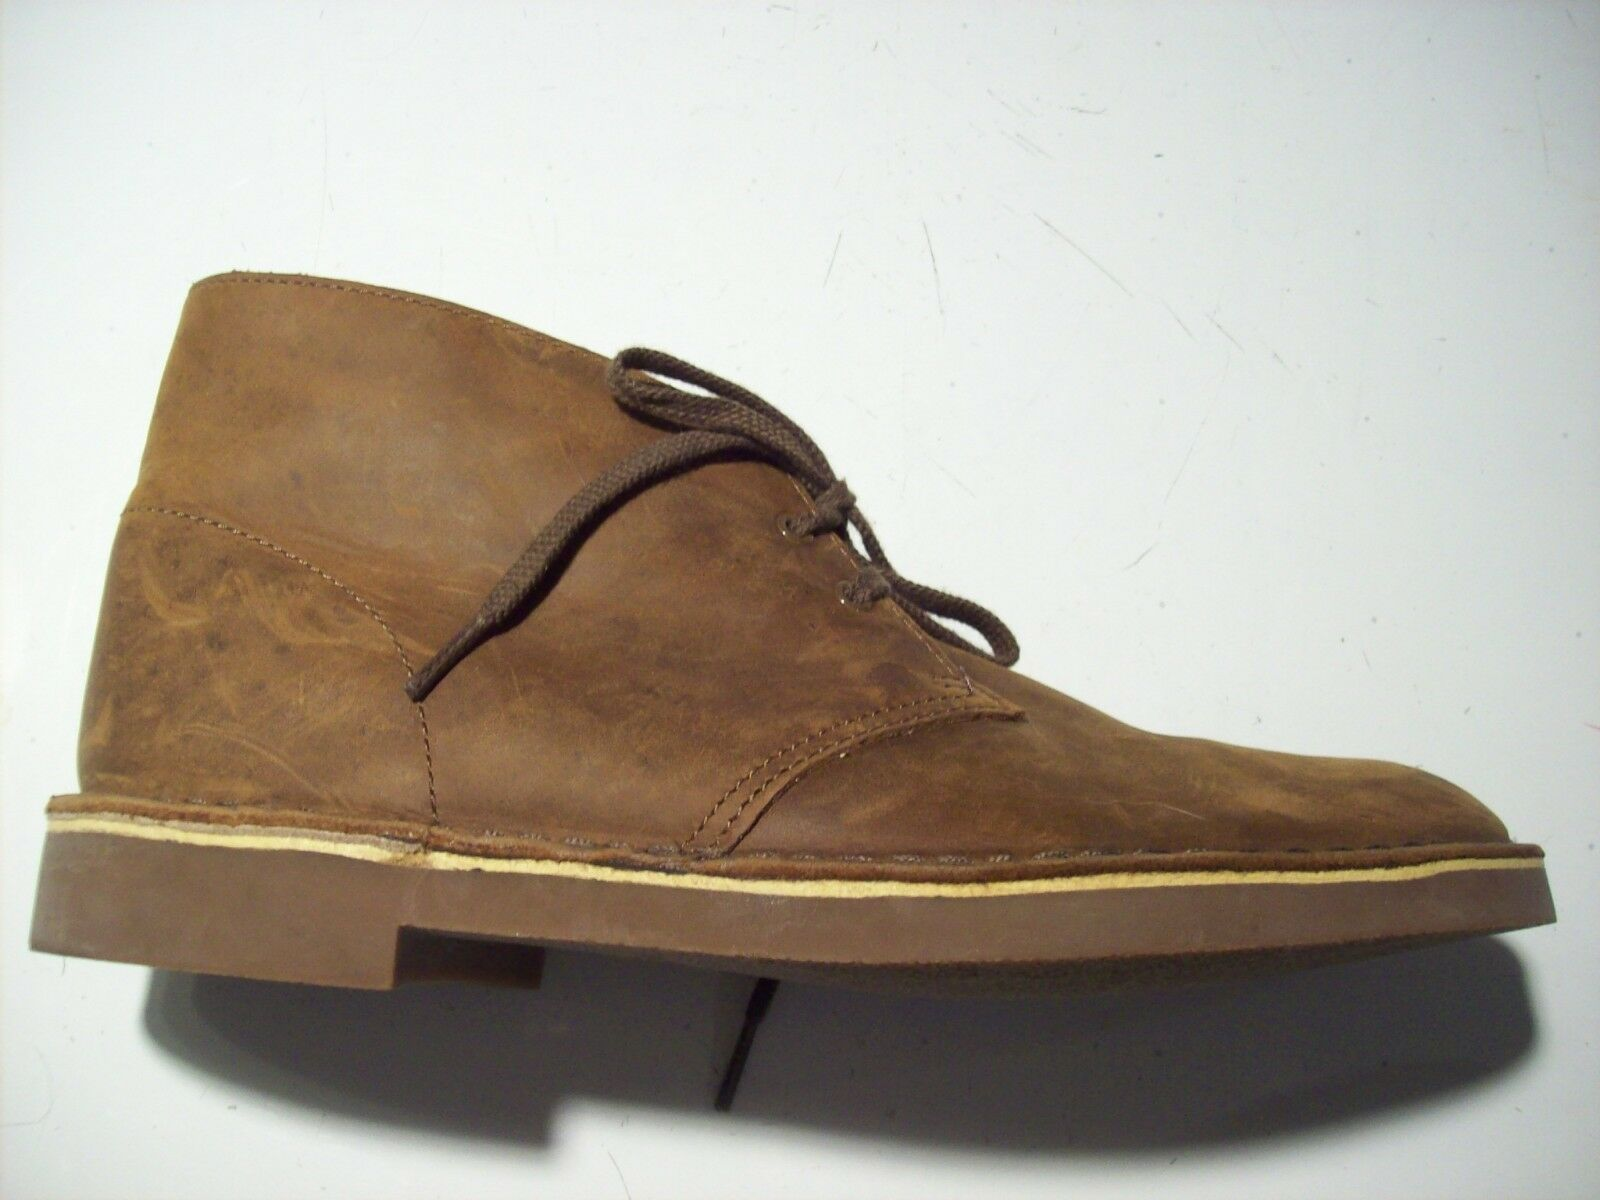 Clarks Bushacre Bushacre Clarks Chukka Brown Leather Oxford Ankle Boots Size 8 @ cLOSeT 26082286 17c054